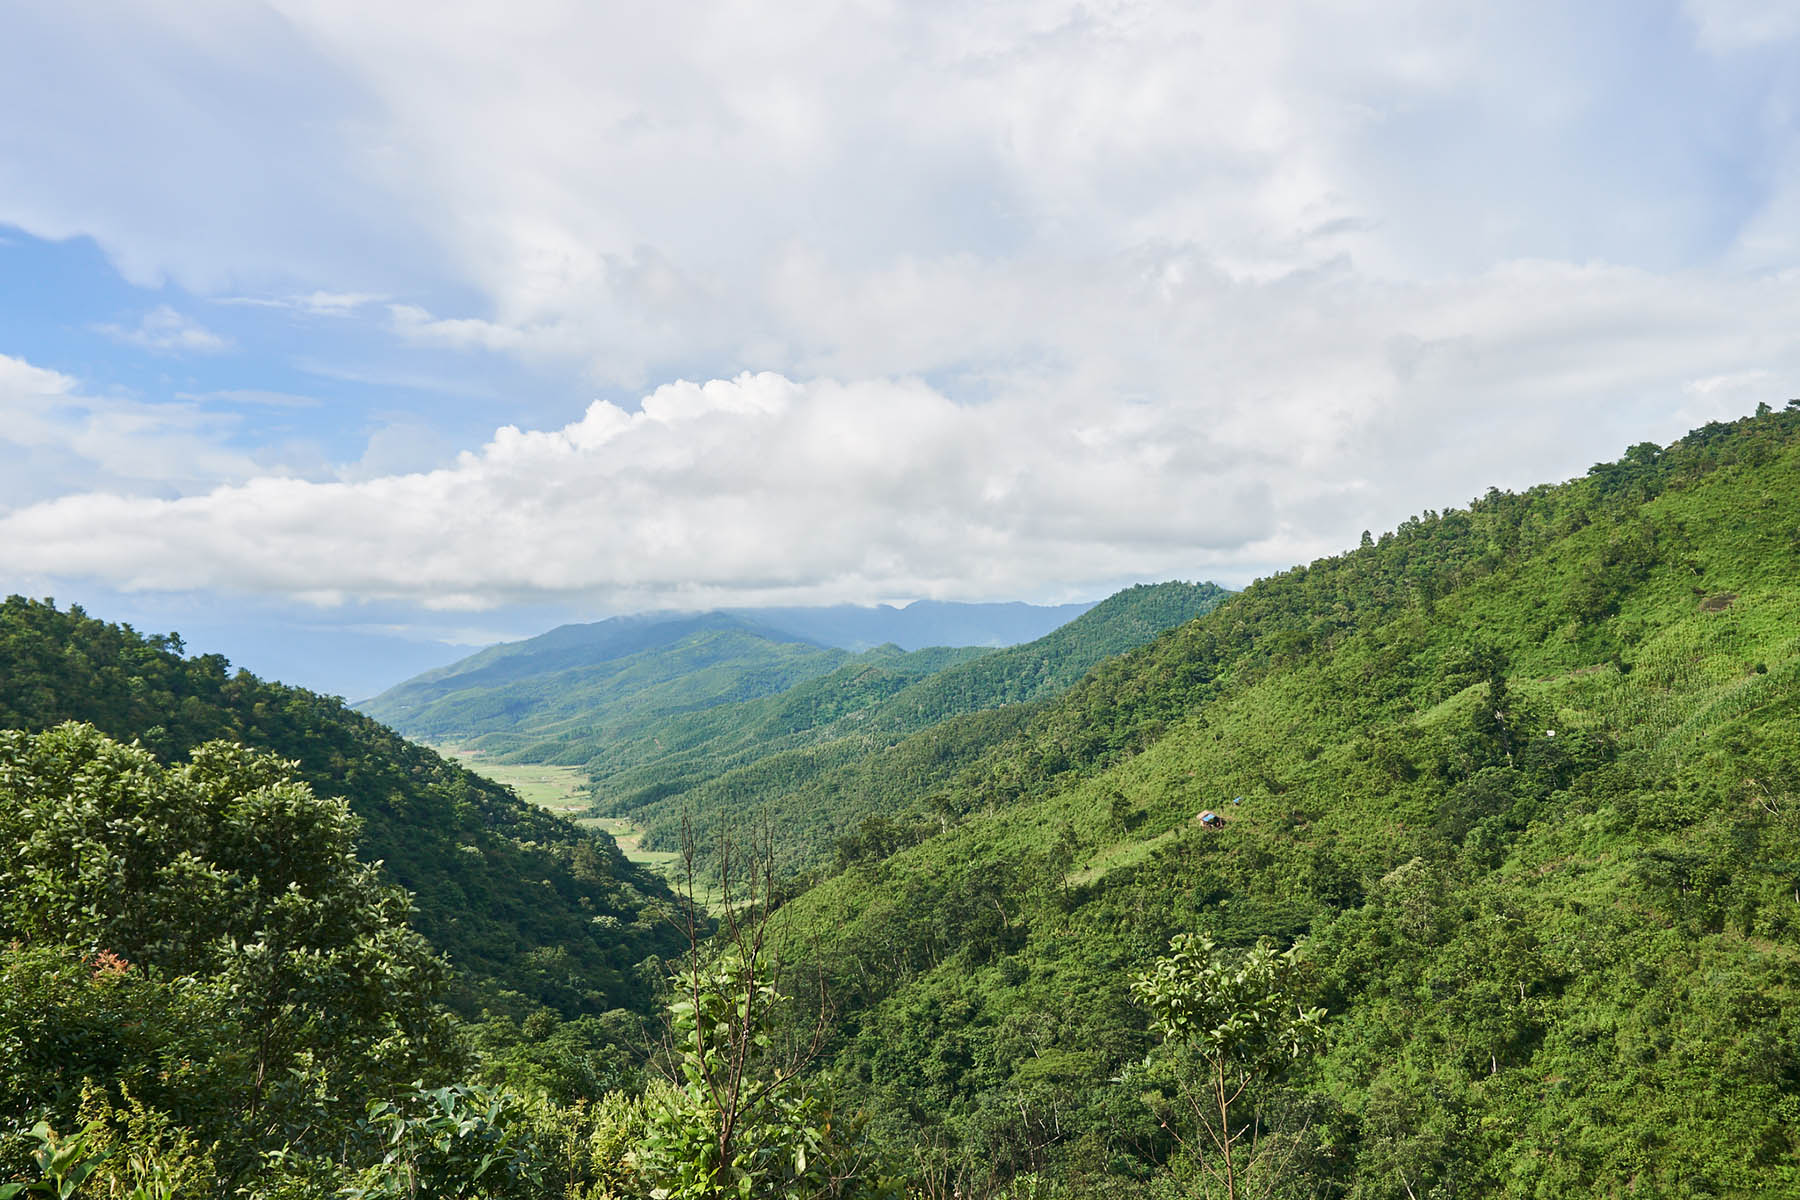 These hills are just about 1,5 kilometer away from Kangpokpi